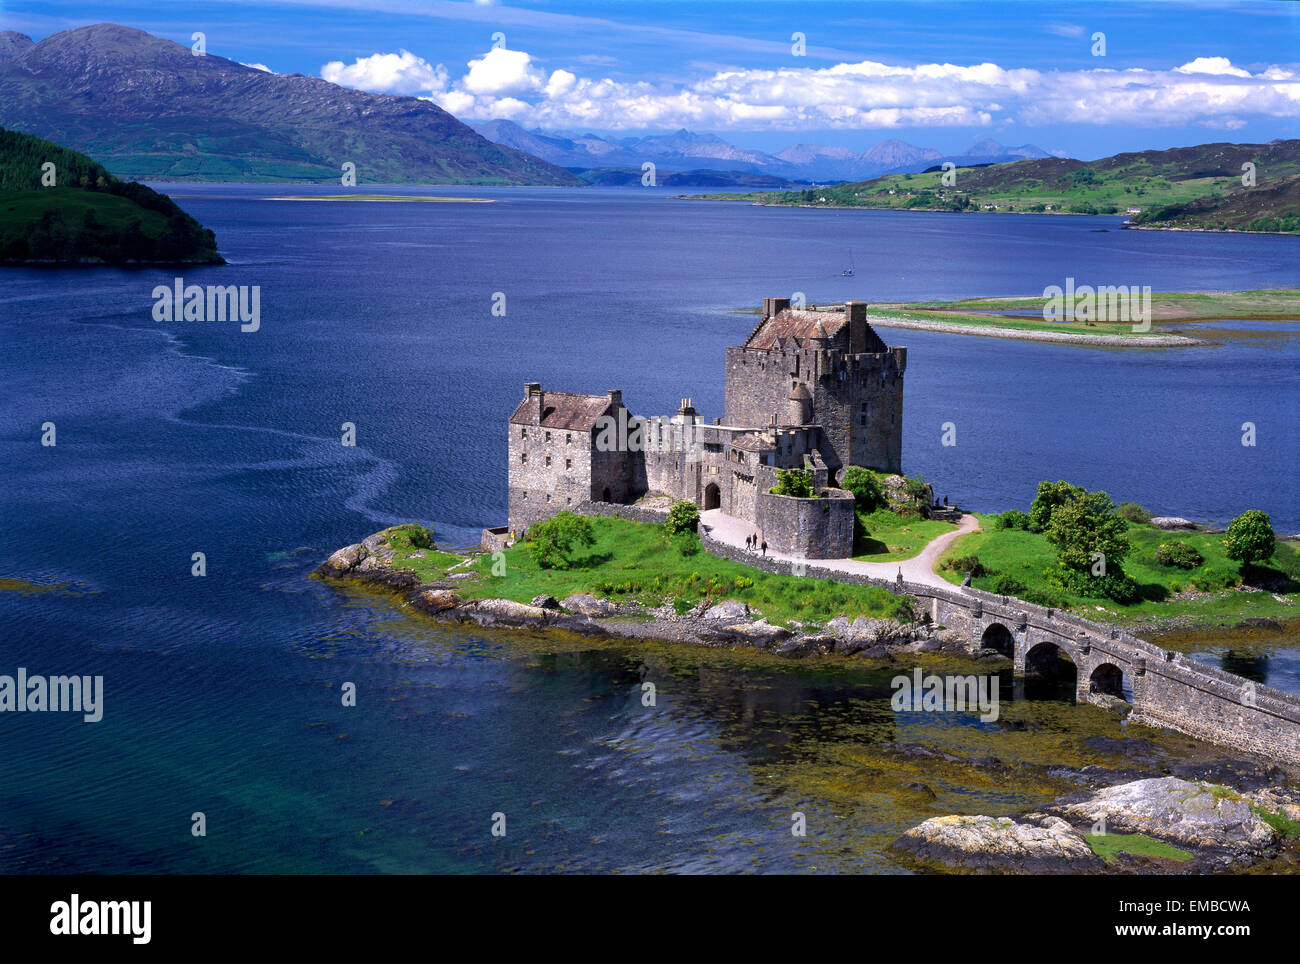 Eilean Donan Castle, Loch Duich, Kyle of Lochalsh, Scotland, UK - Stock Image